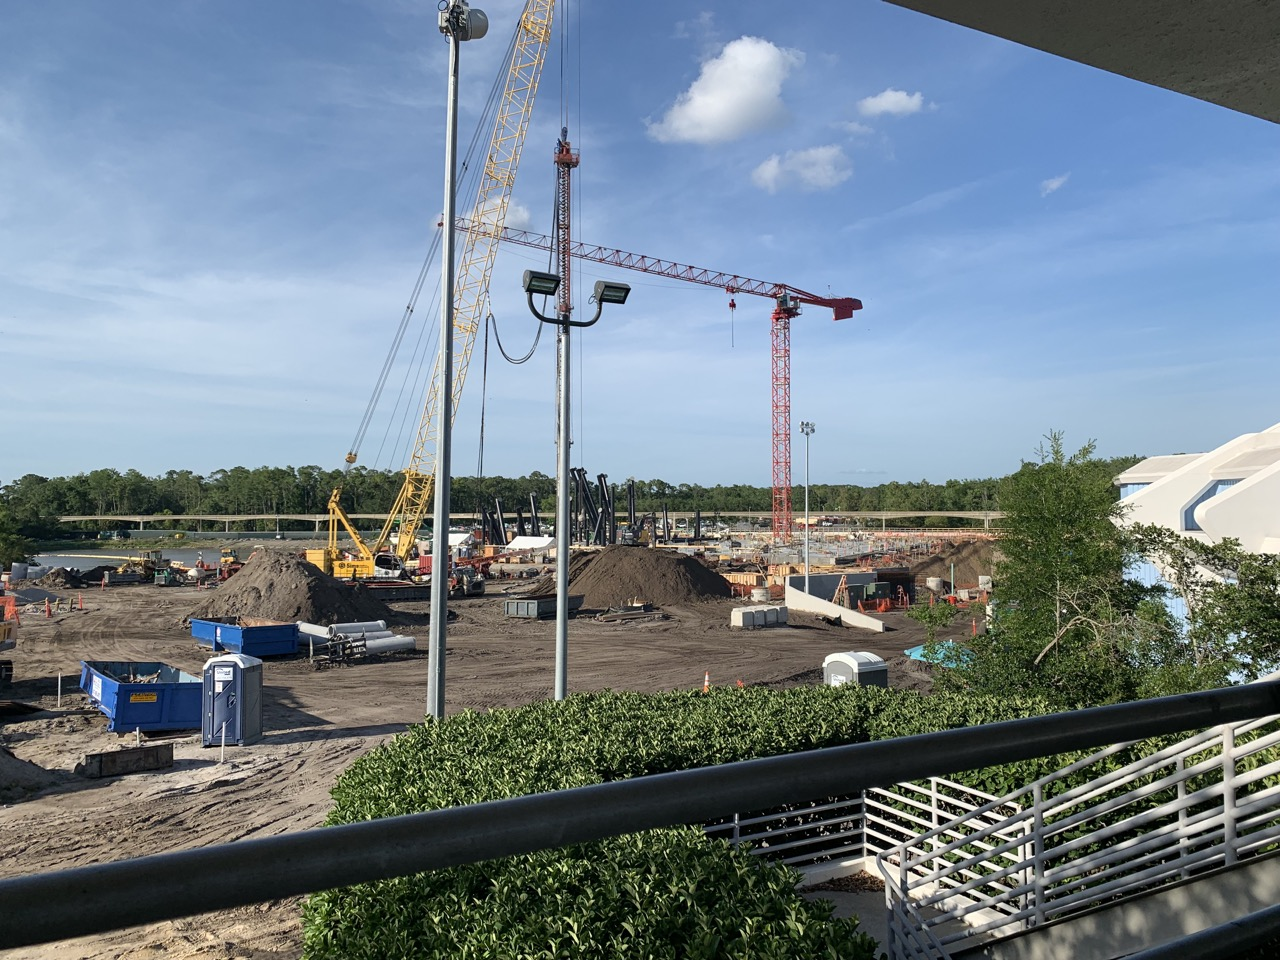 disney world trip report early summer 2019 day five construction 13.jpeg